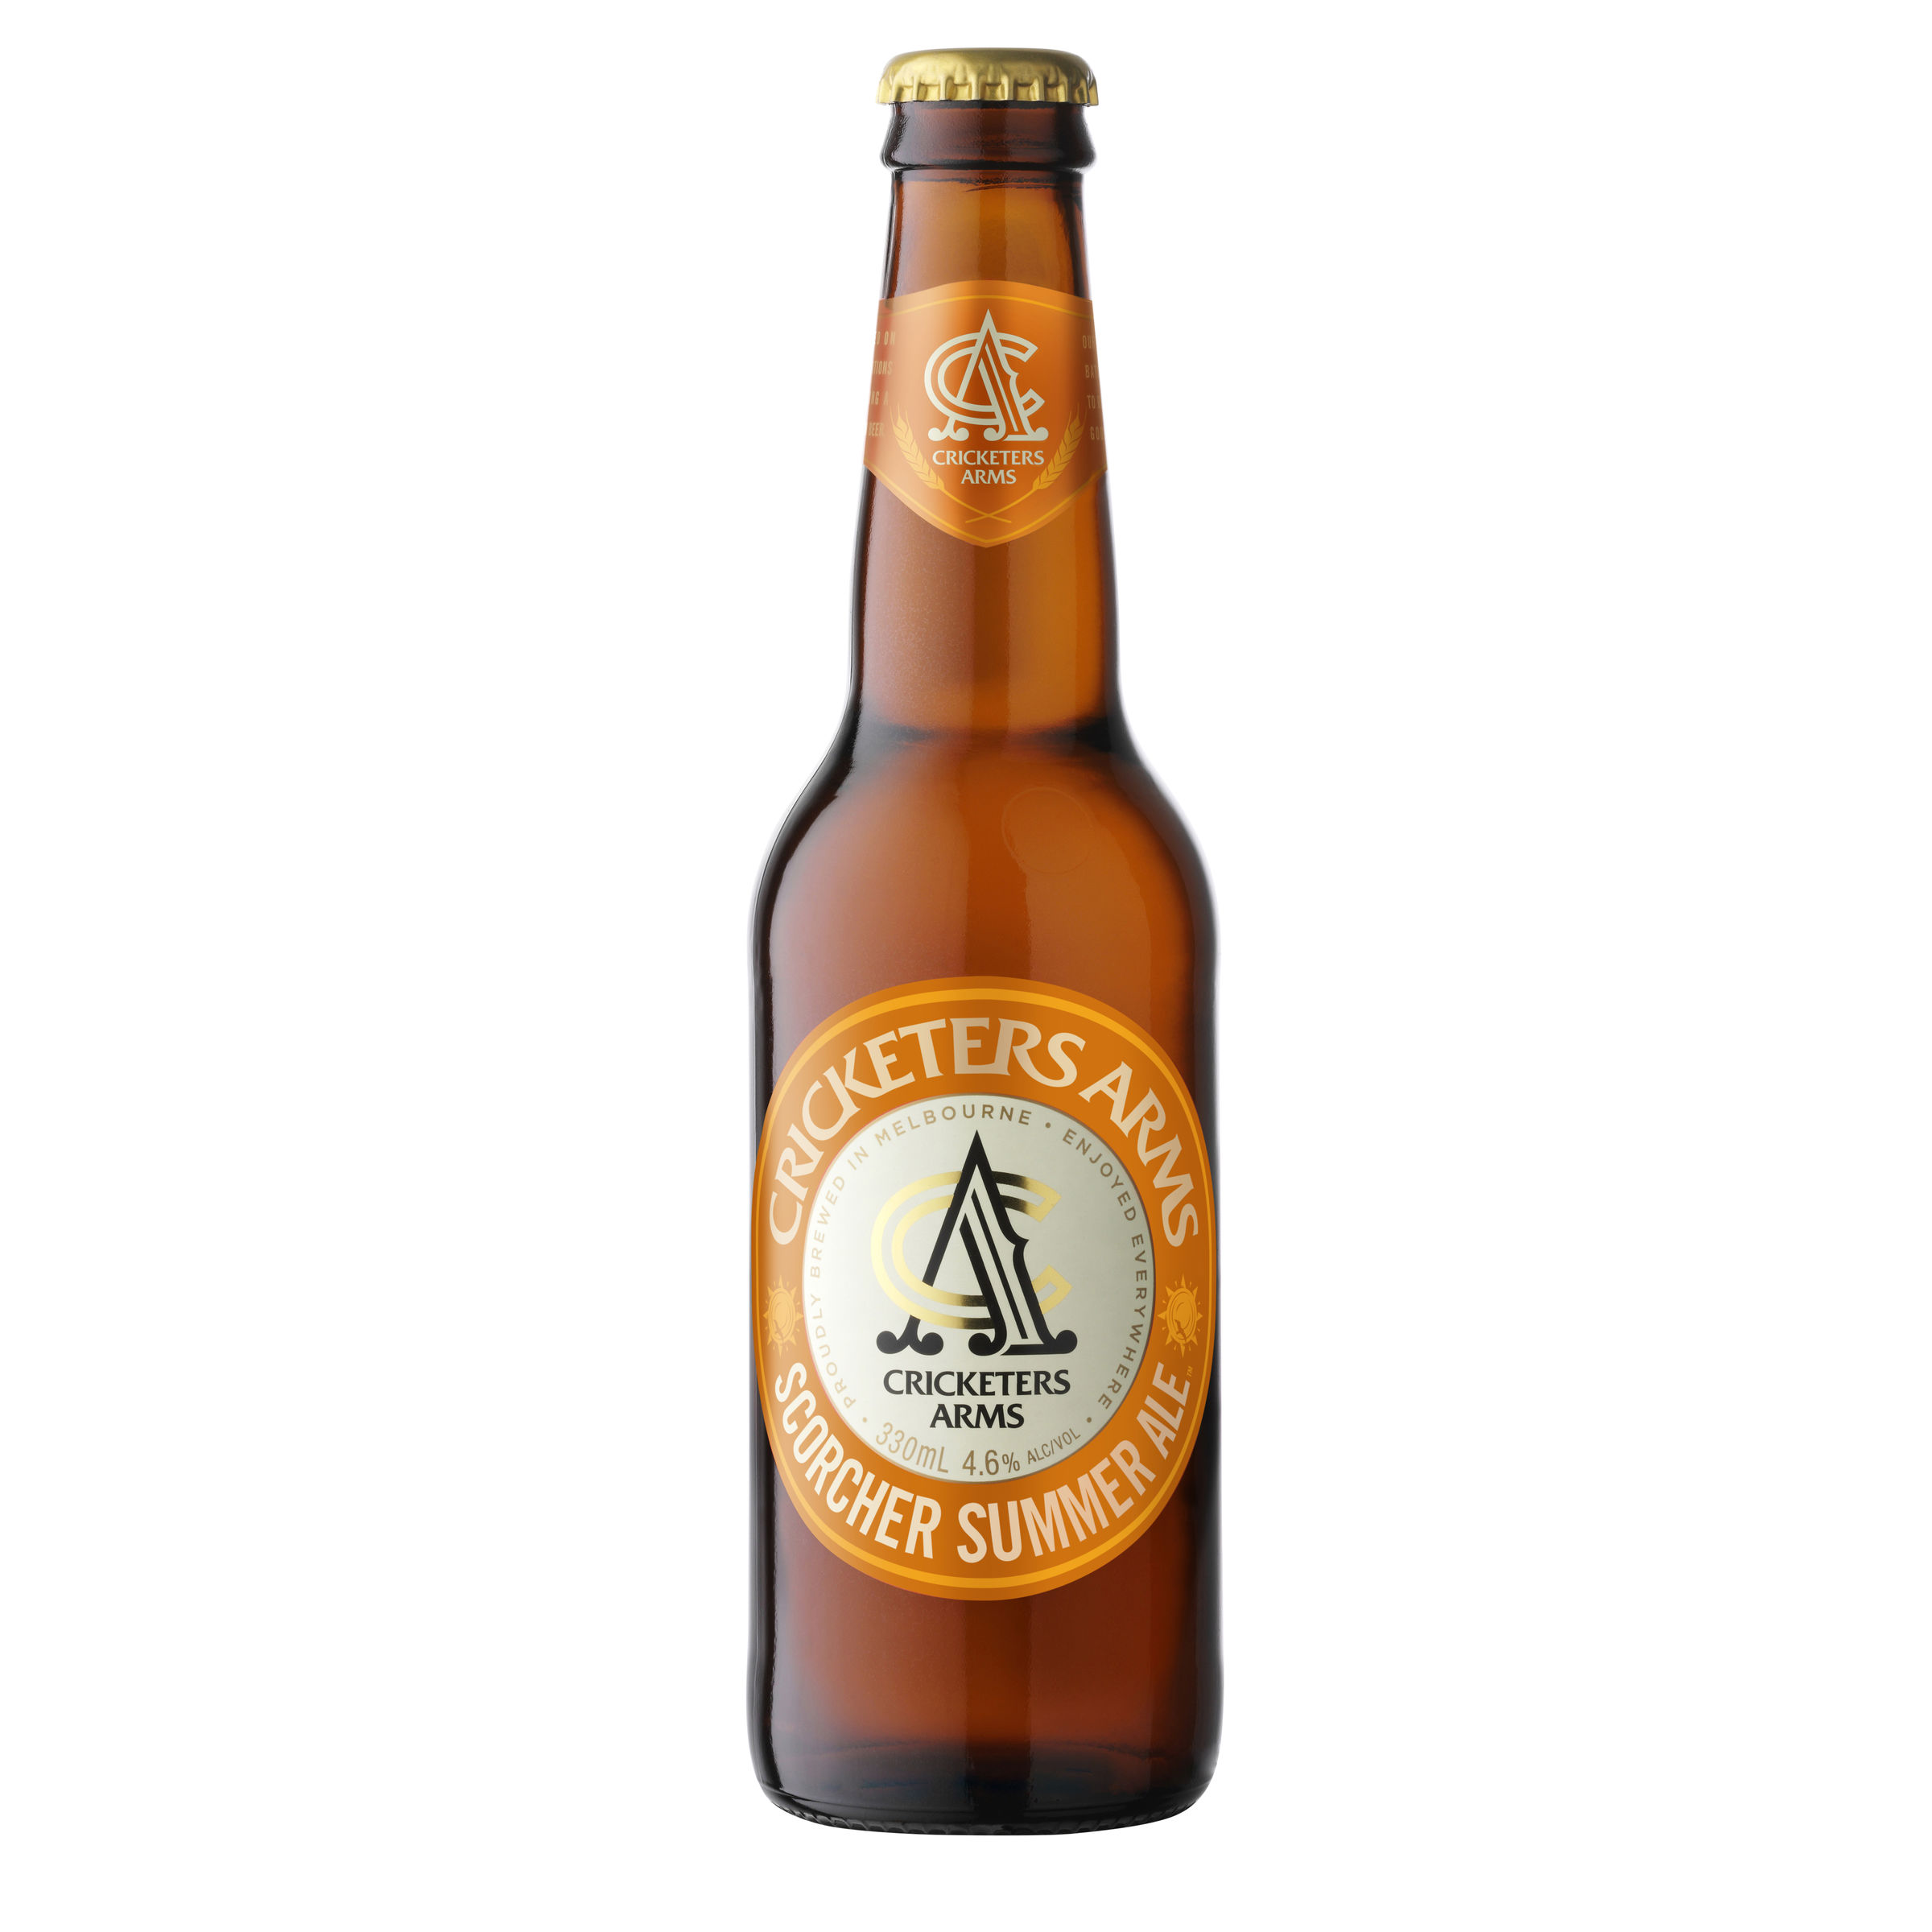 CRICKETERS ARMS SCORCHER SUMMER ALE BOTTLE